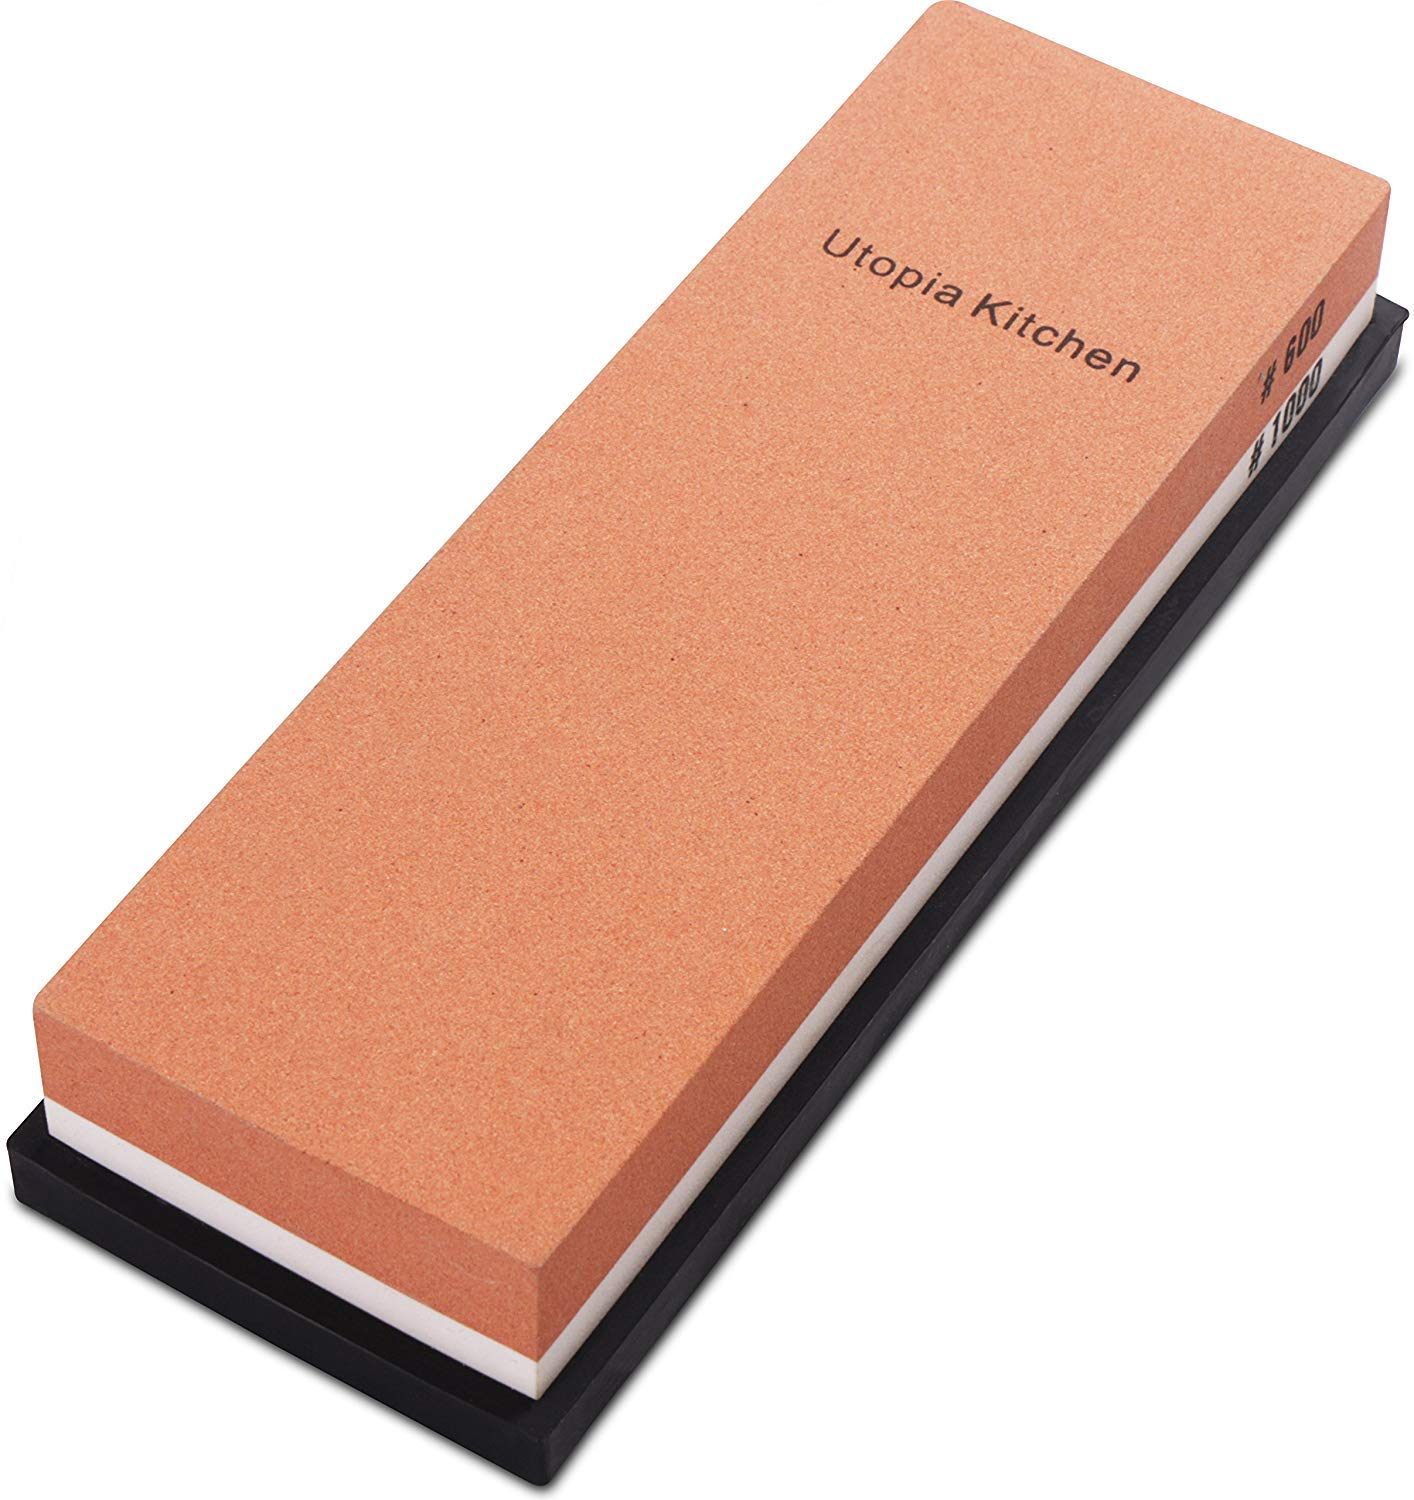 Utopia Kitchen Double-Sided Knife Sharpening Stone - Multi-Colored - 600/1000 Grit (16 Pack)